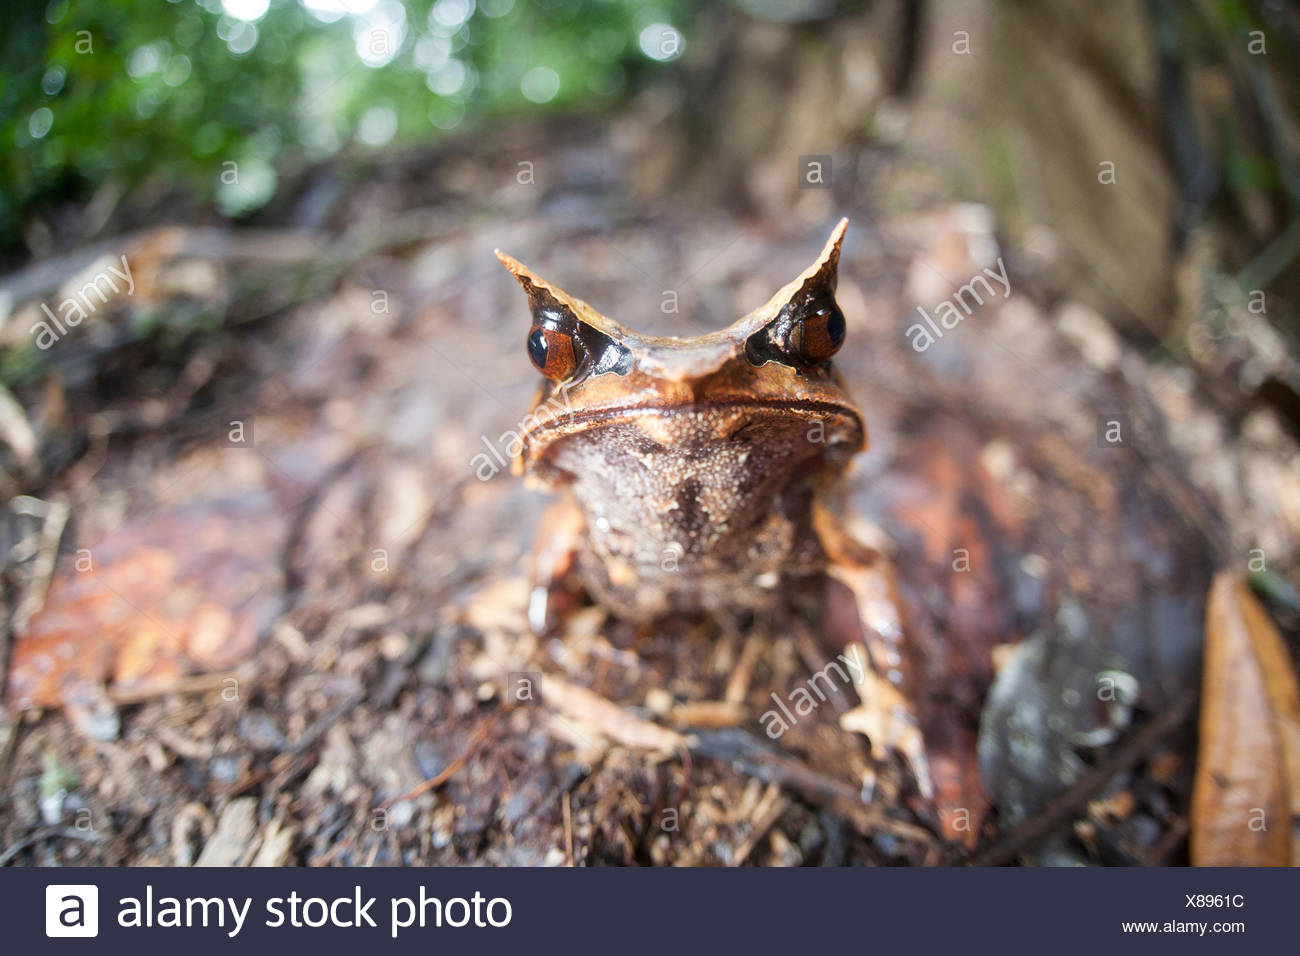 A Bornean horned frog, Megophrys nasuta, on the forest floor in Borneo. - Stock Image